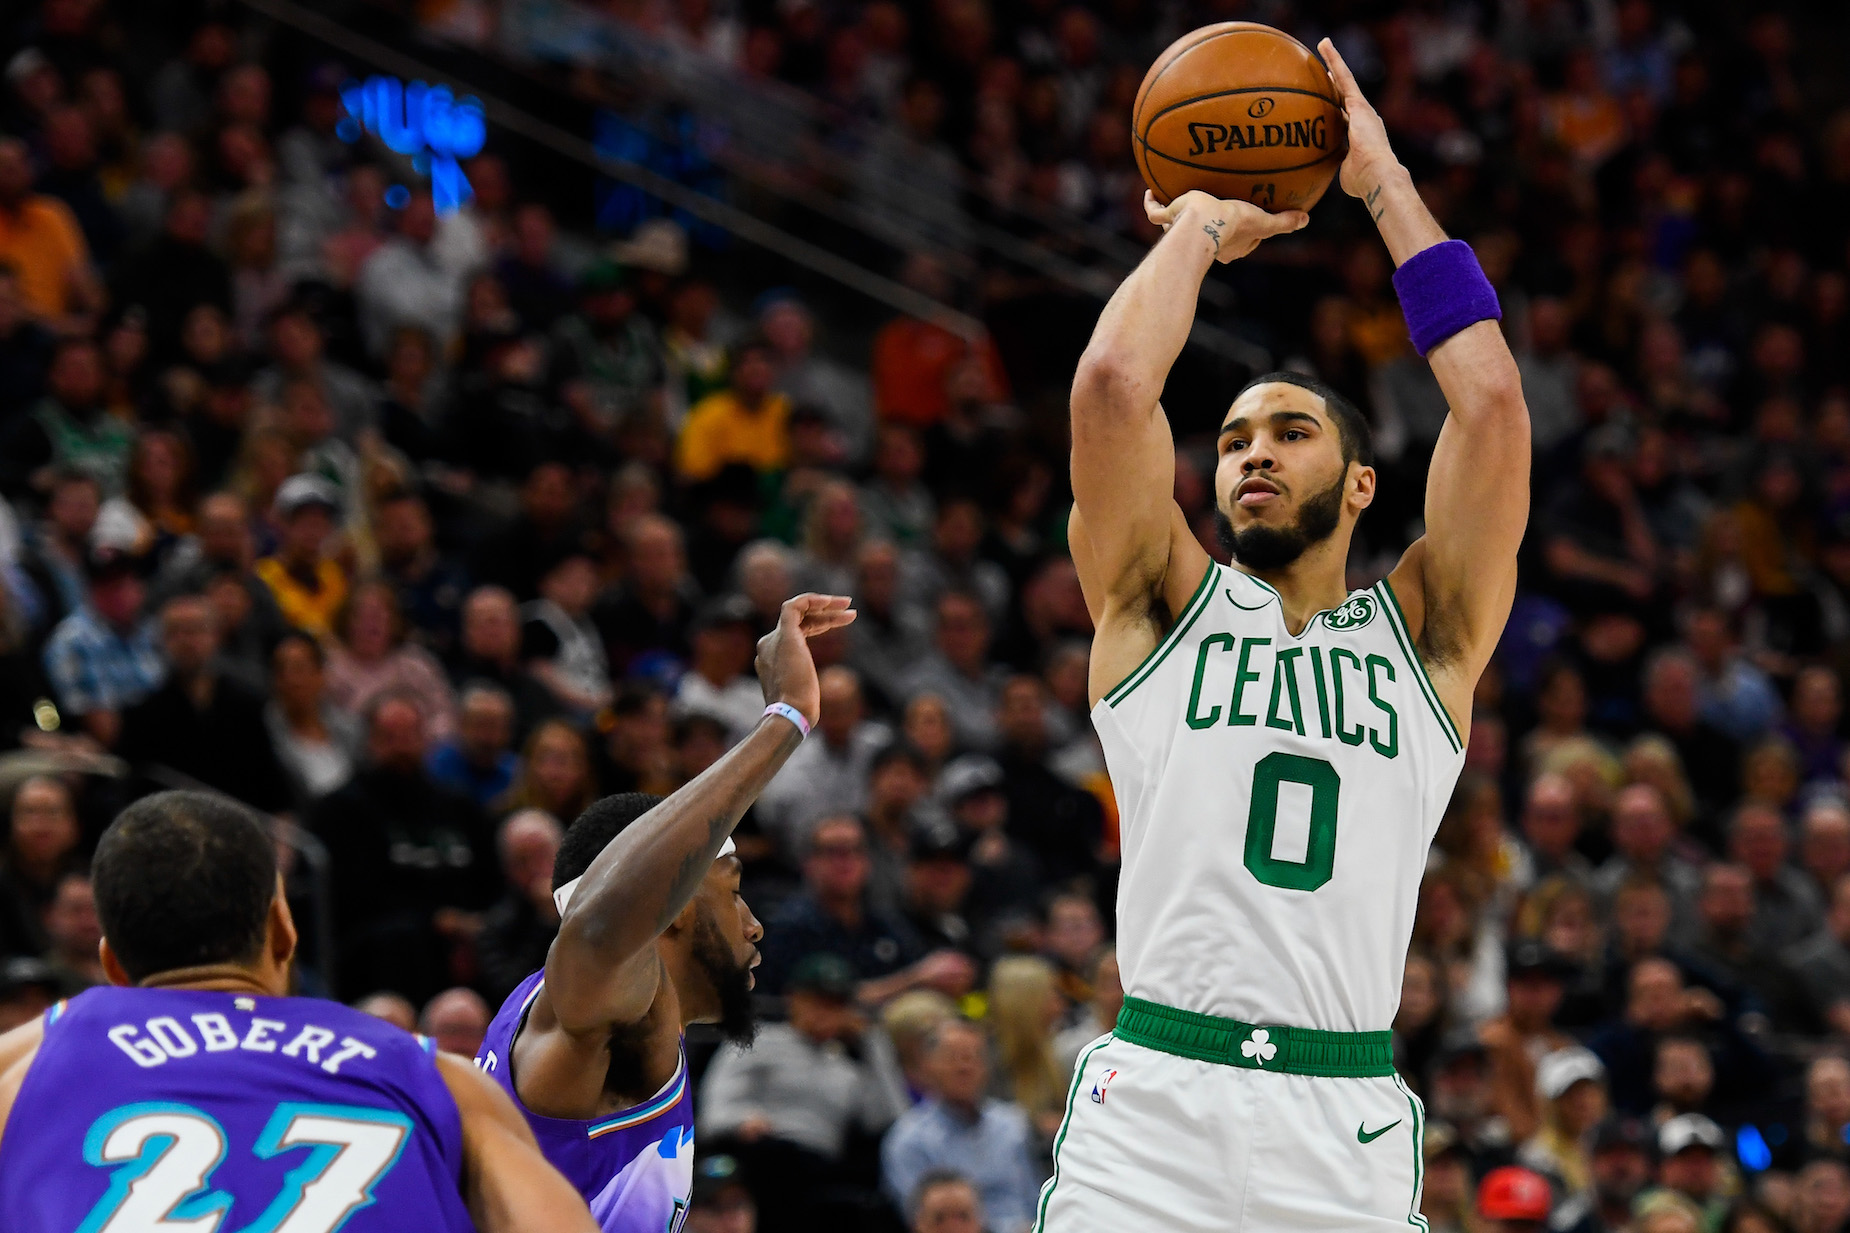 While Jayson Tatum has earned plenty of money in the NBA, he doesn't spend his Celtics salary.